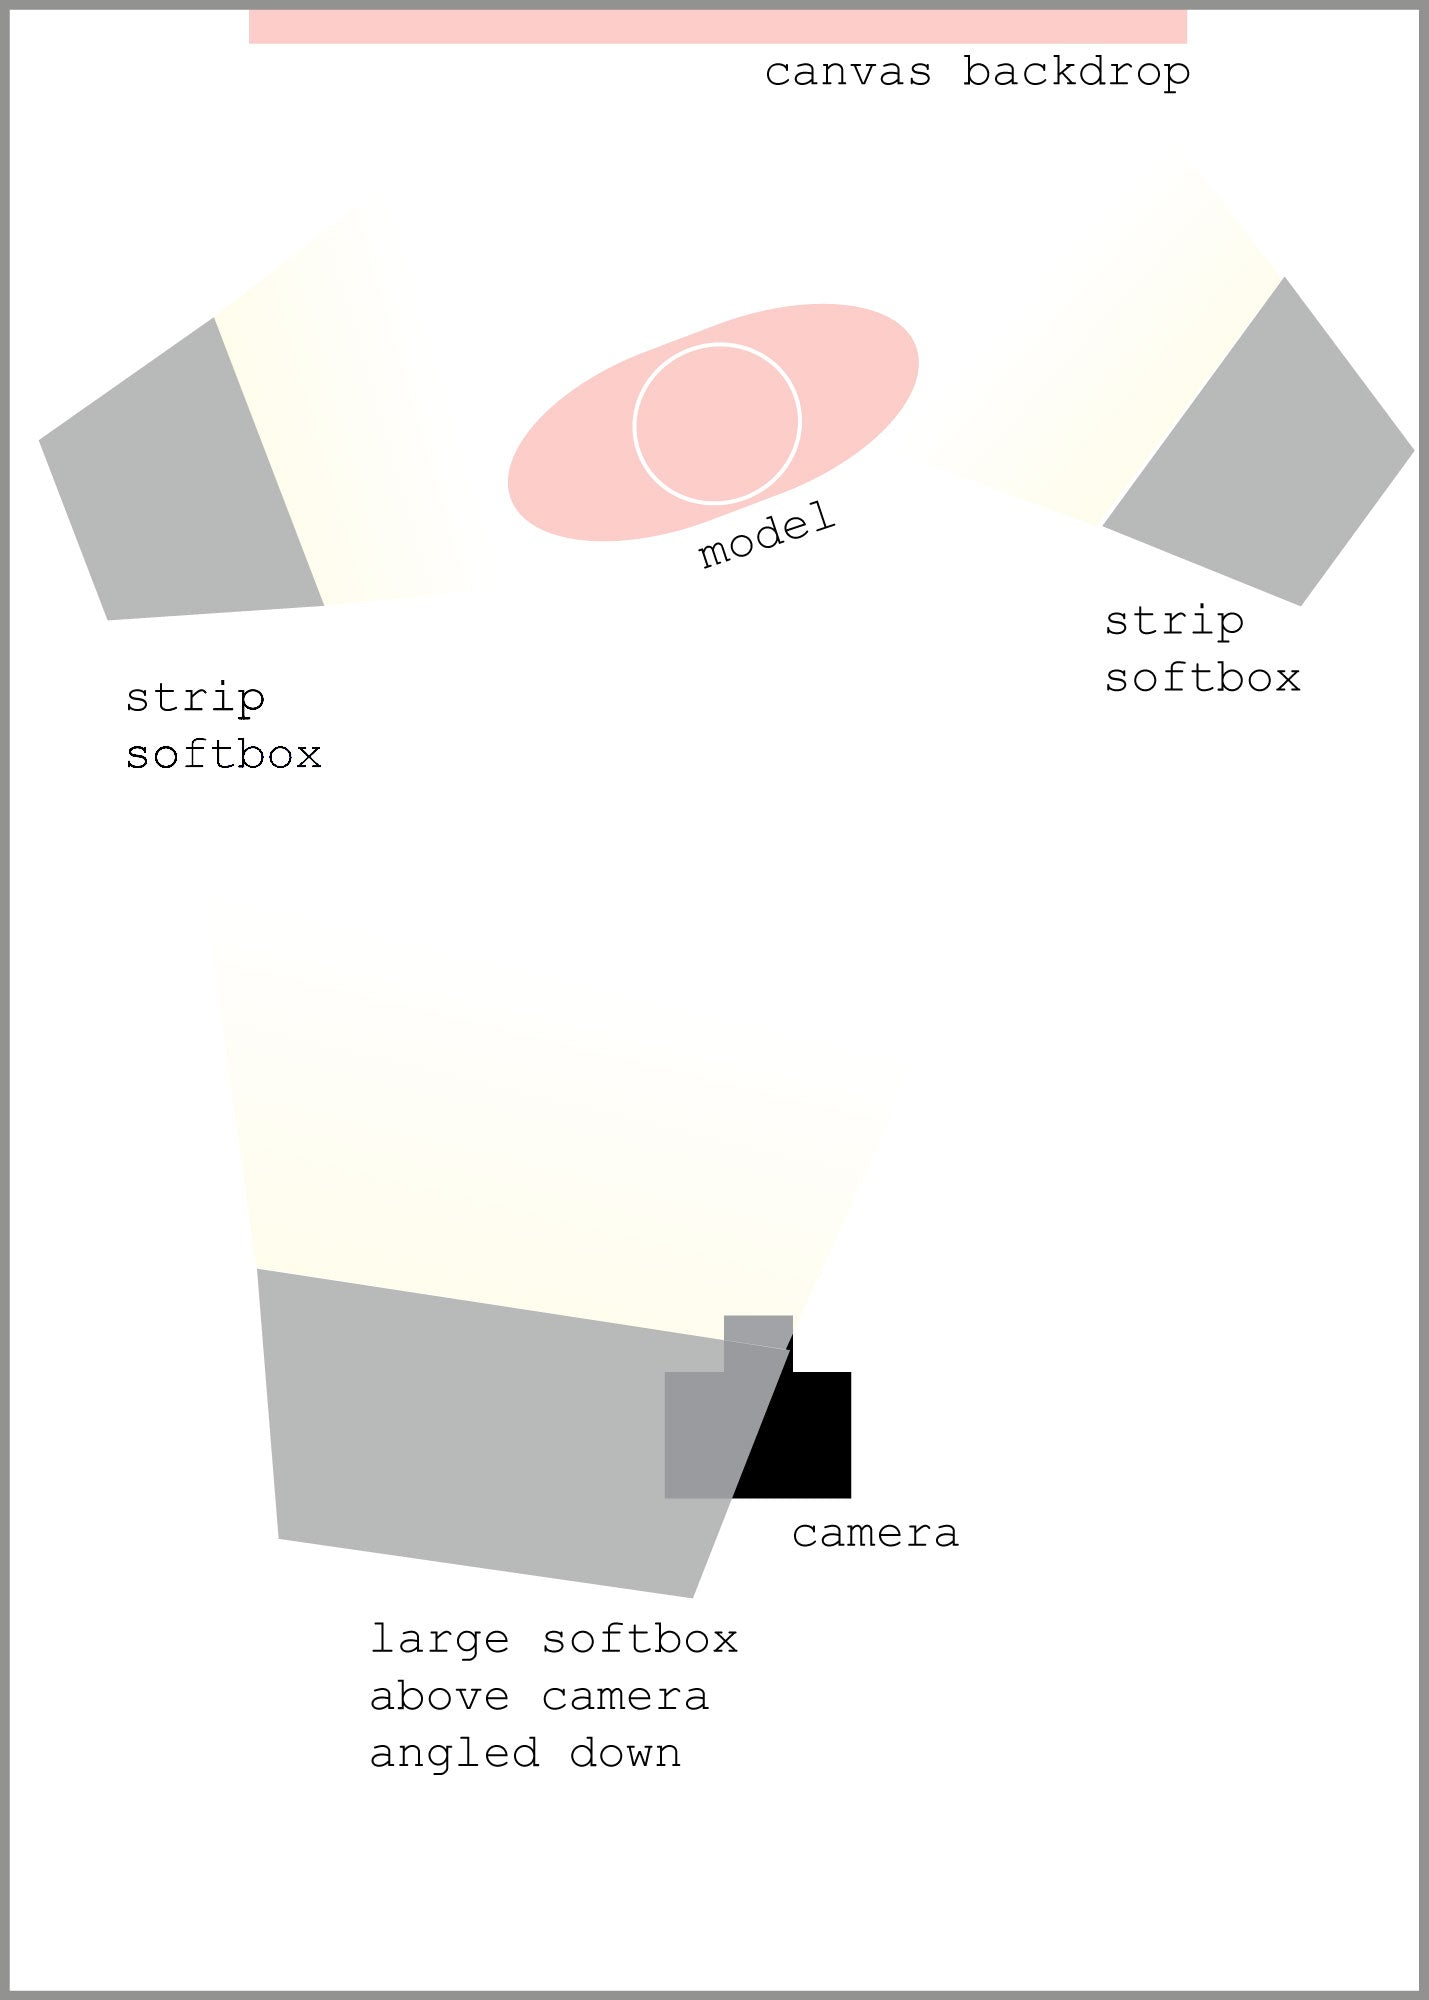 Simple lighting diagram for canvas portrait backdrops